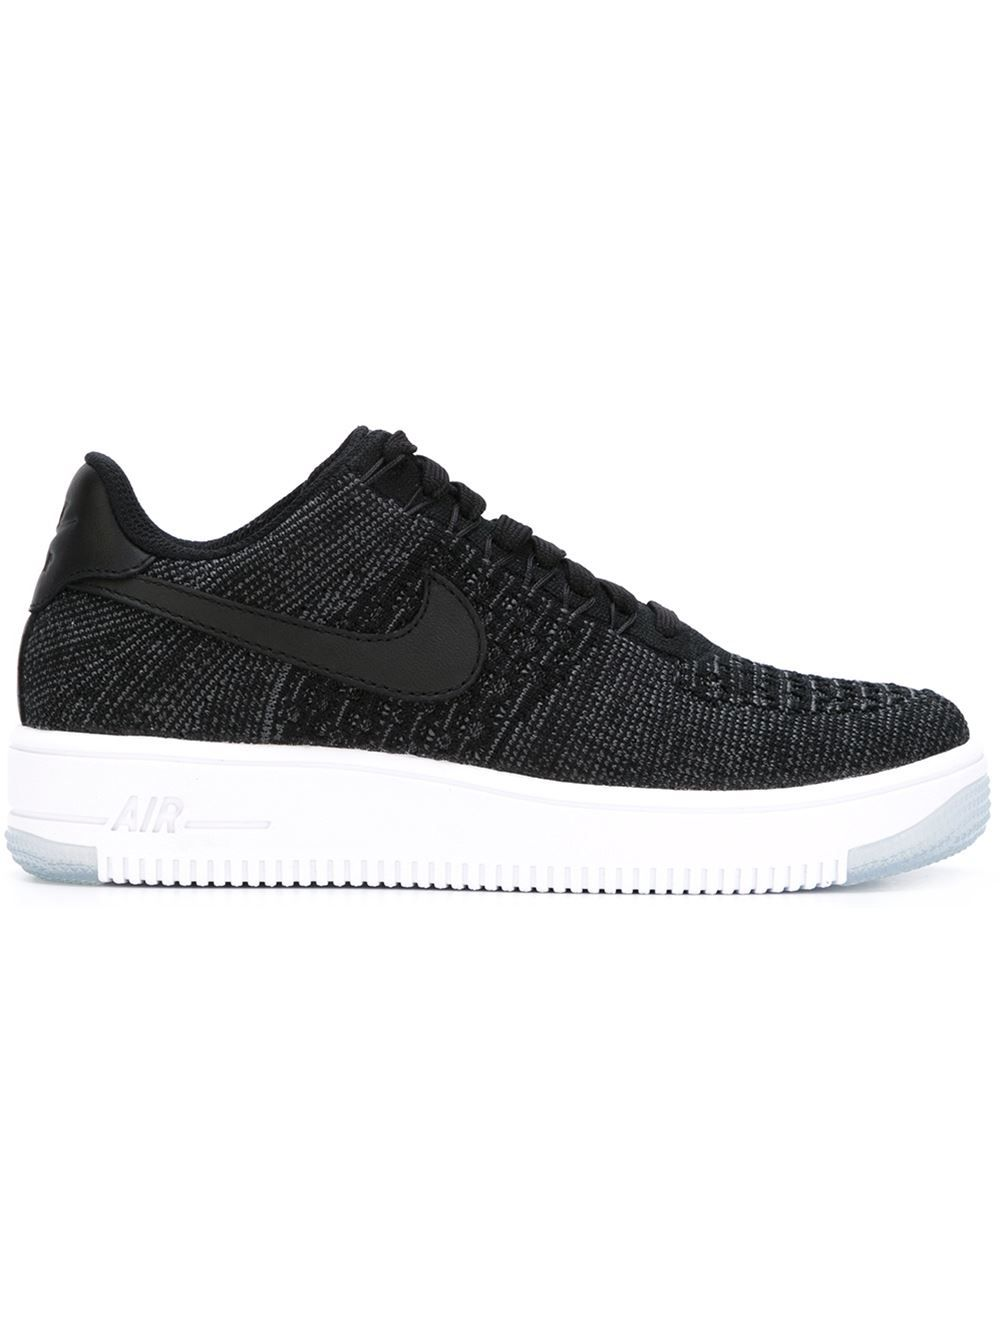 heiß Nike Air Force 1 Größe 33 | low ✓ midi ✓ high ✓ dein